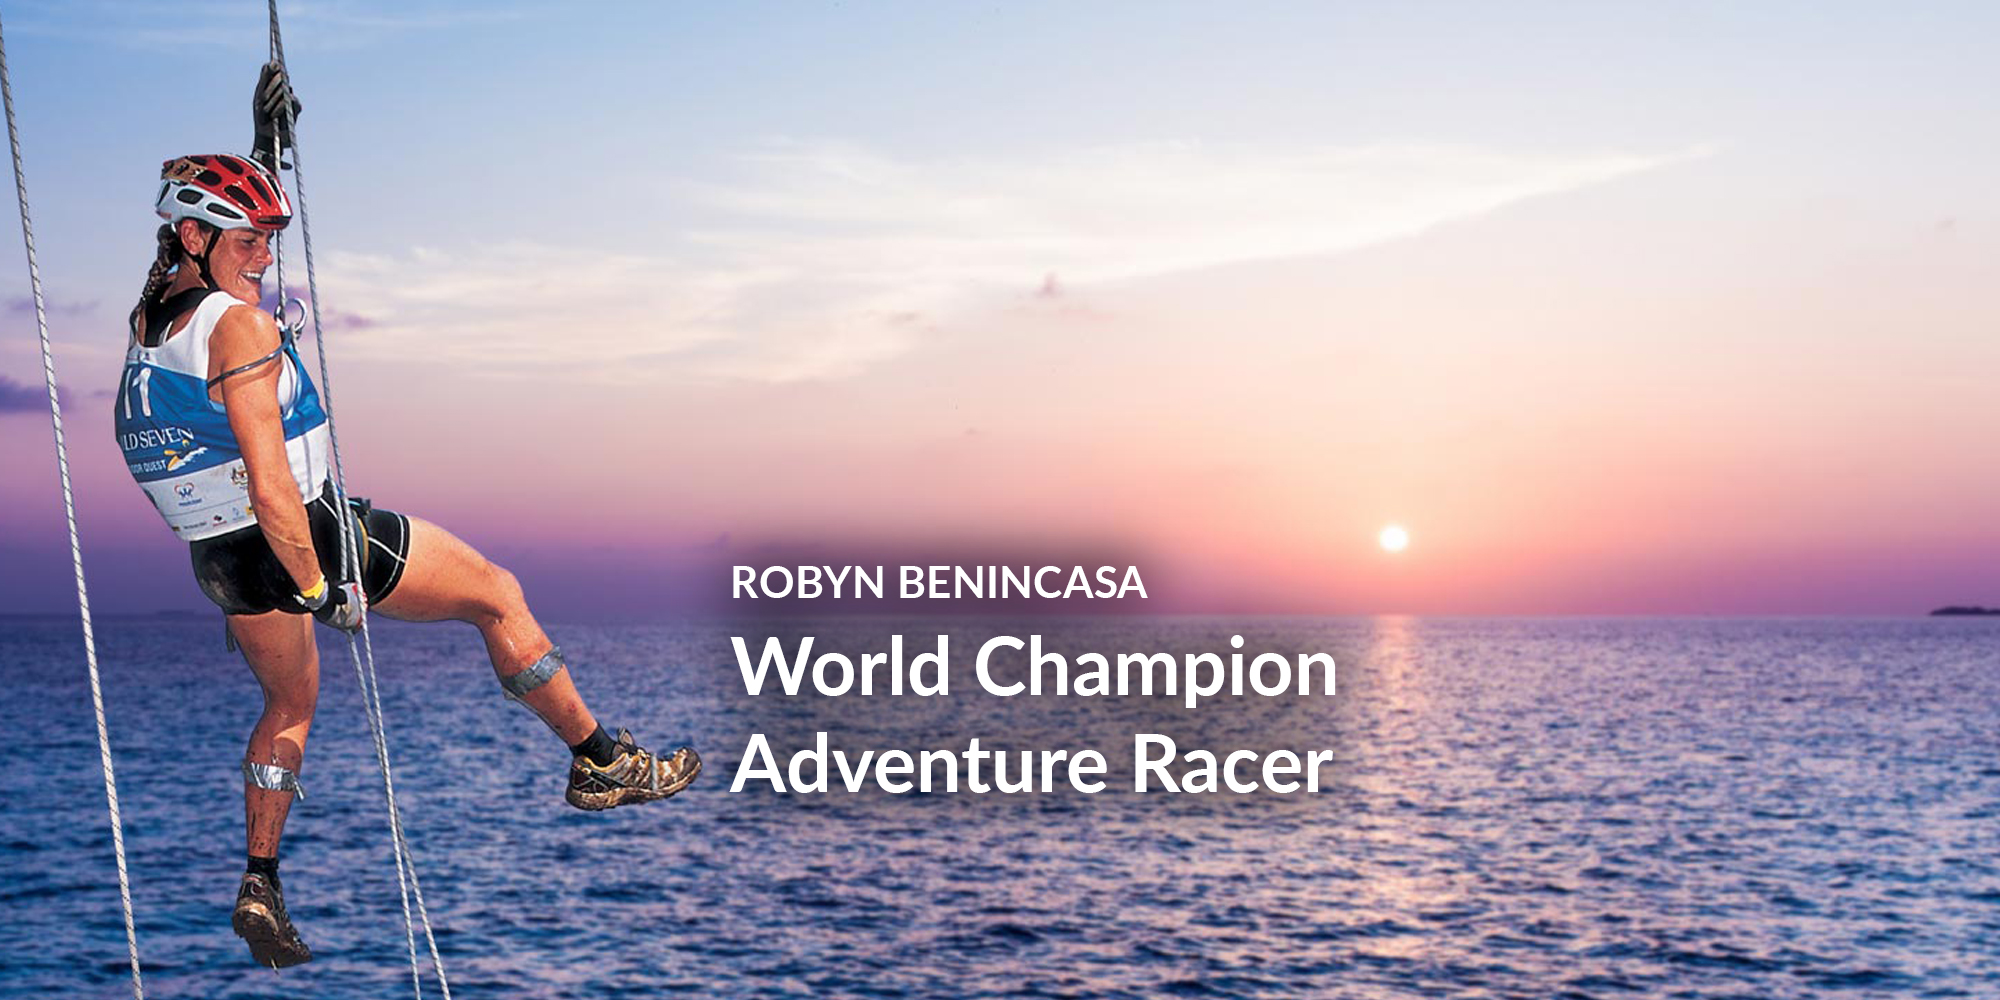 Robyn Benincasa: World Champion Adventure Racer